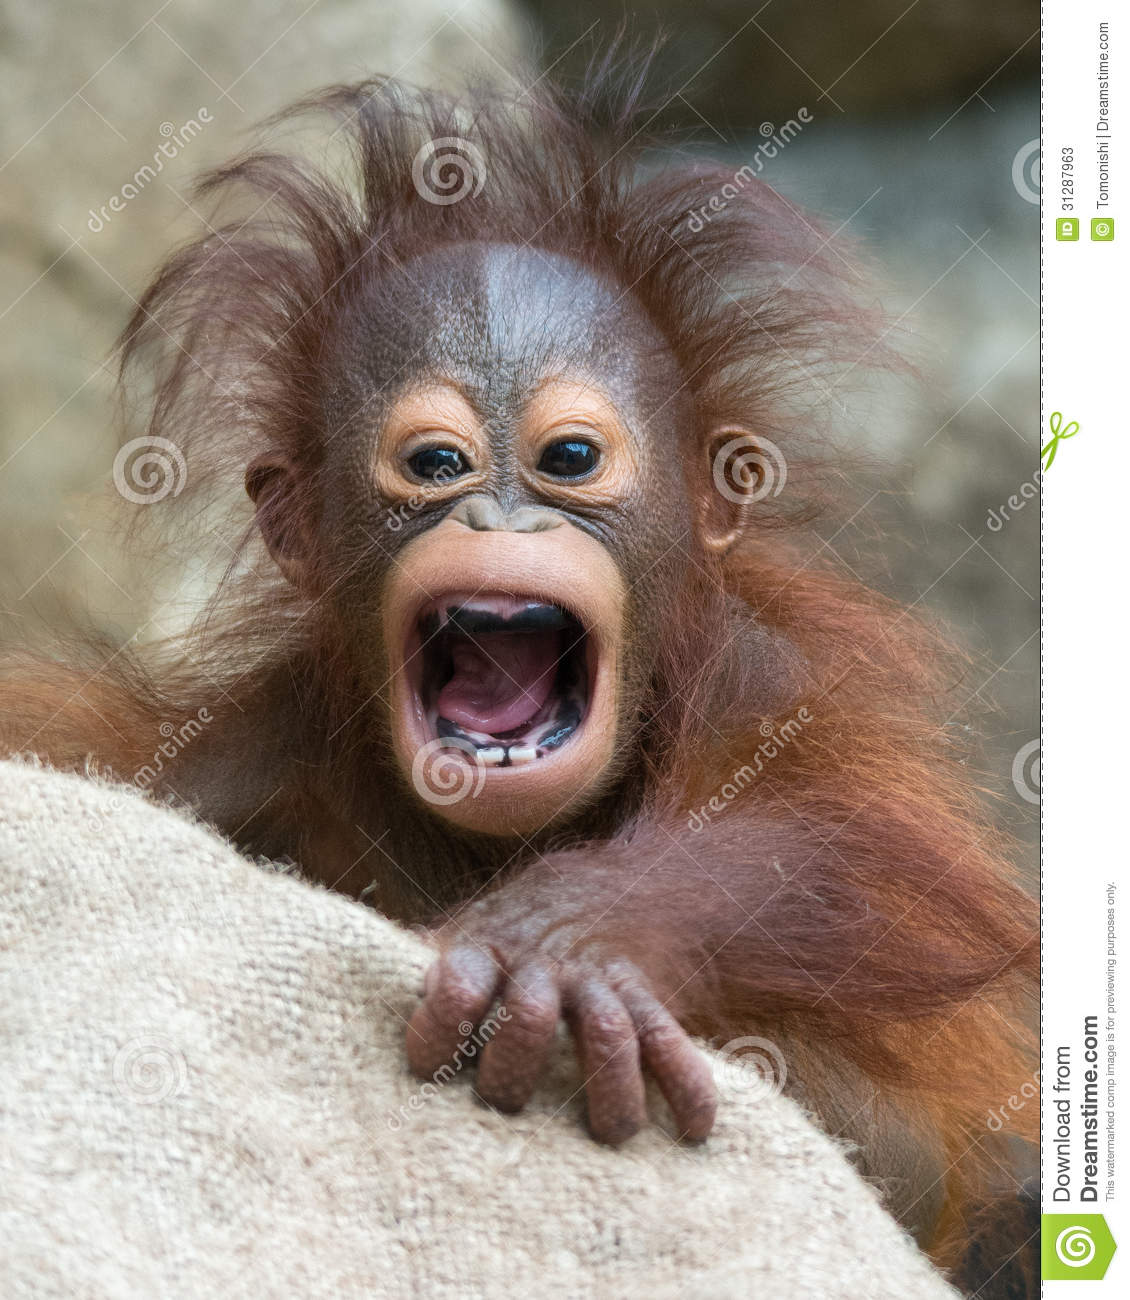 stupid valentines day quotes - Orangutan Baby With Funny Face Stock s Image